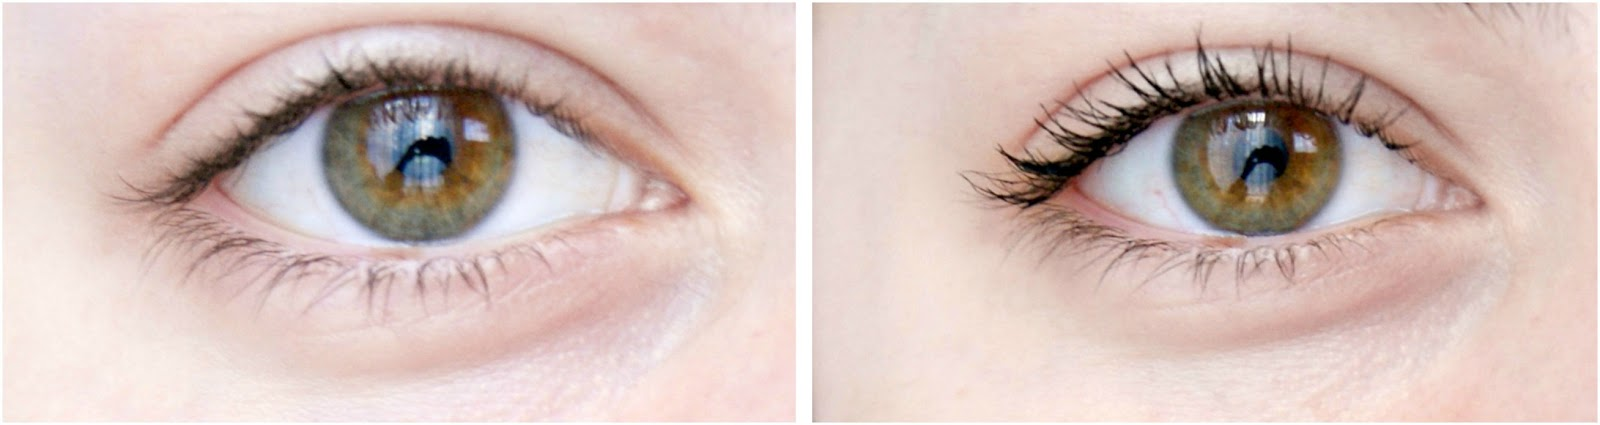 maybelline lash sensational mascara before after